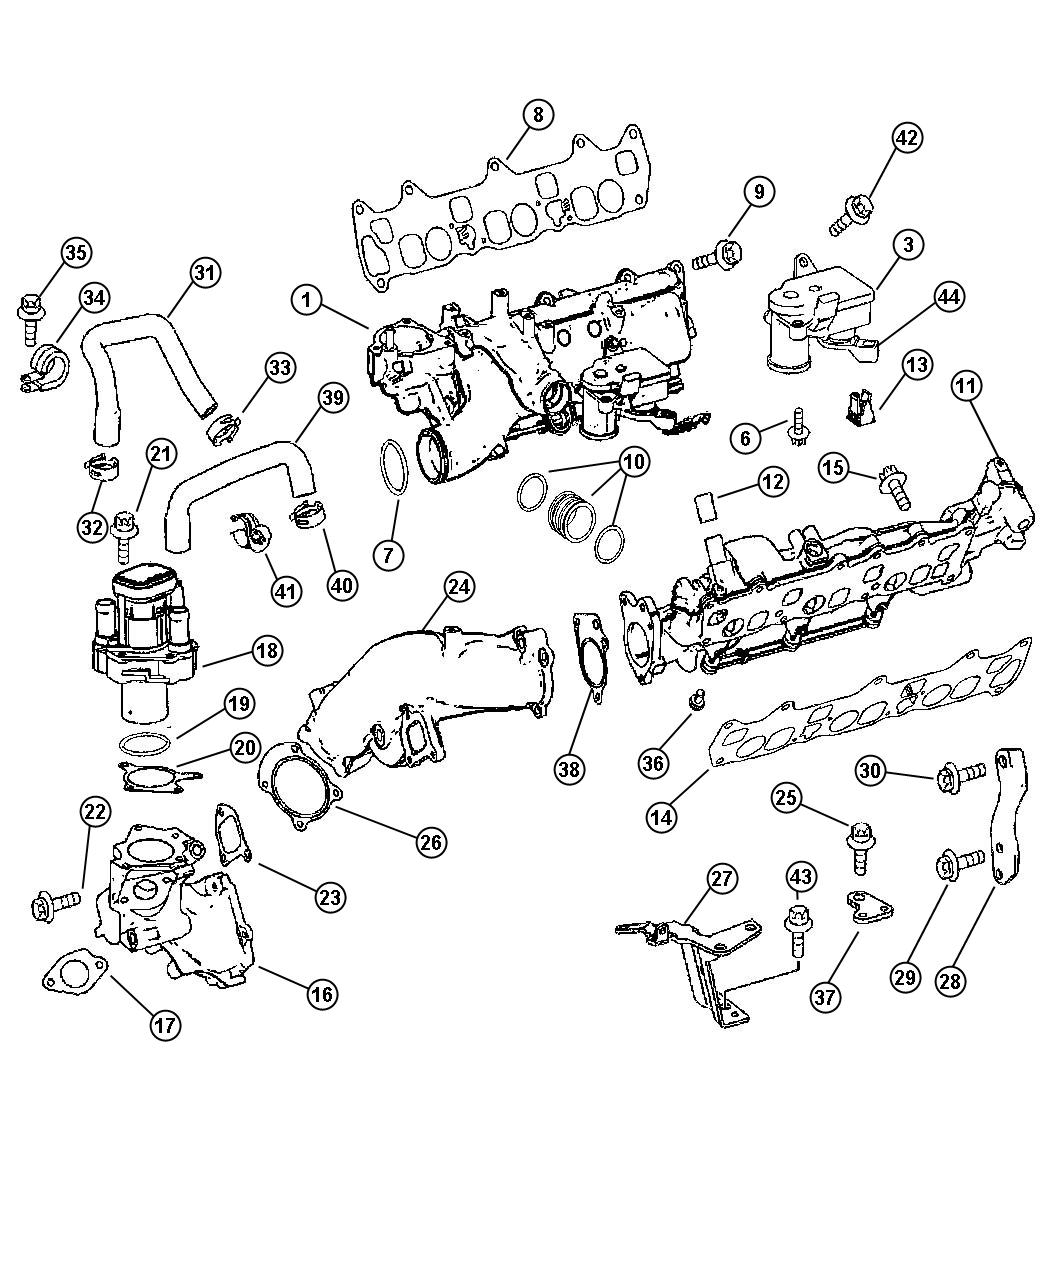 Dodge 2005 3500 5 9 Sel Engine Diagram as well P 0996b43f80cb1d07 together with Gmc Savana Parts Diagram besides Jeep Cherokee Parts Diagrams Ab Genuine For besides 422494008773161421. on 2003 dodge 2500 intake heater fuse